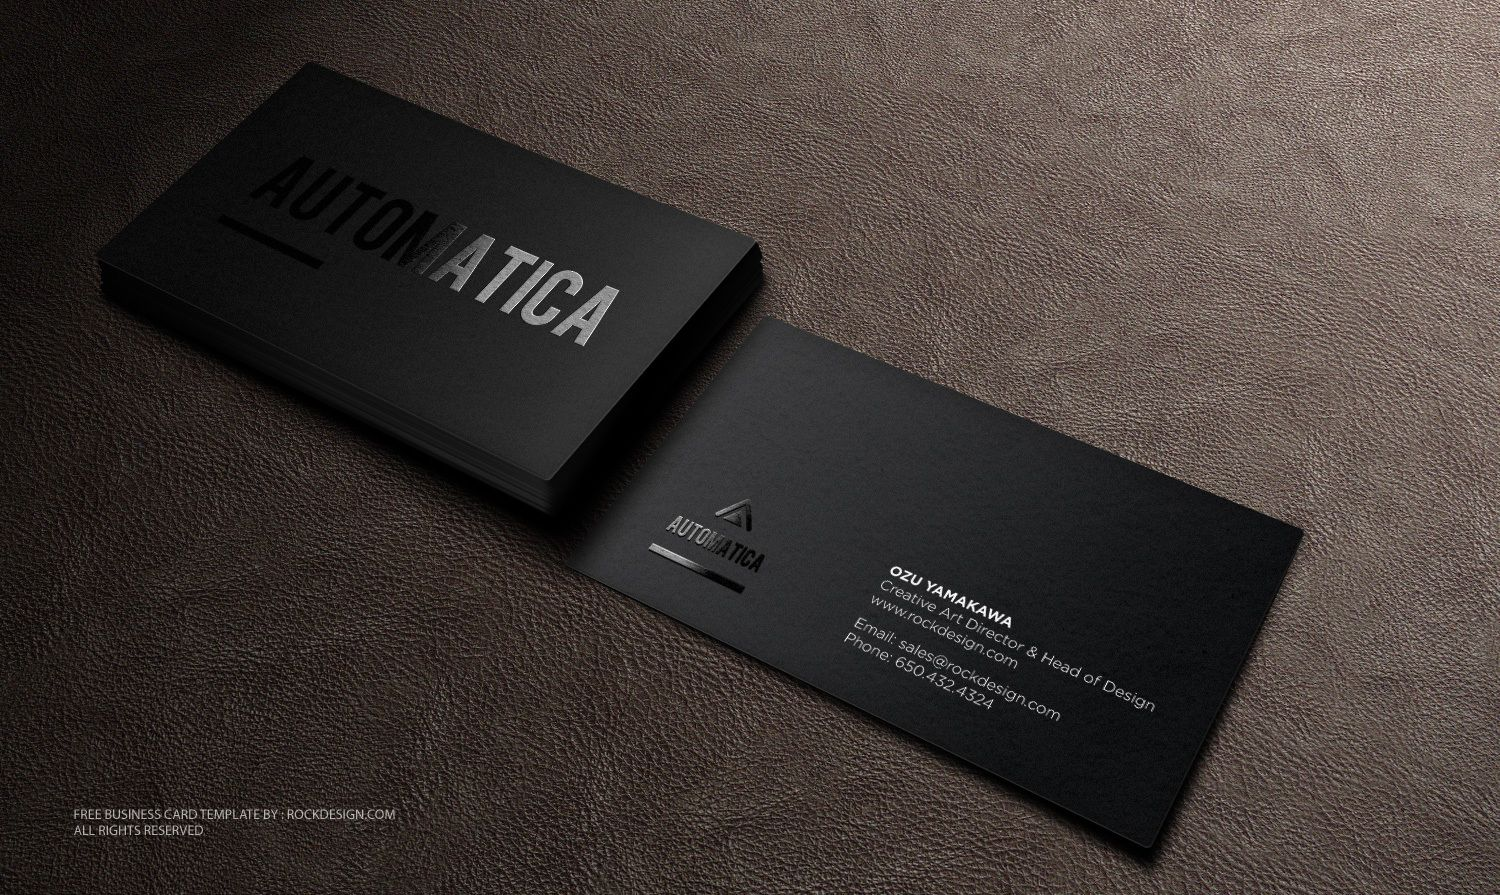 Black Business Card Template Download Free Design Templates - Free business card layout template